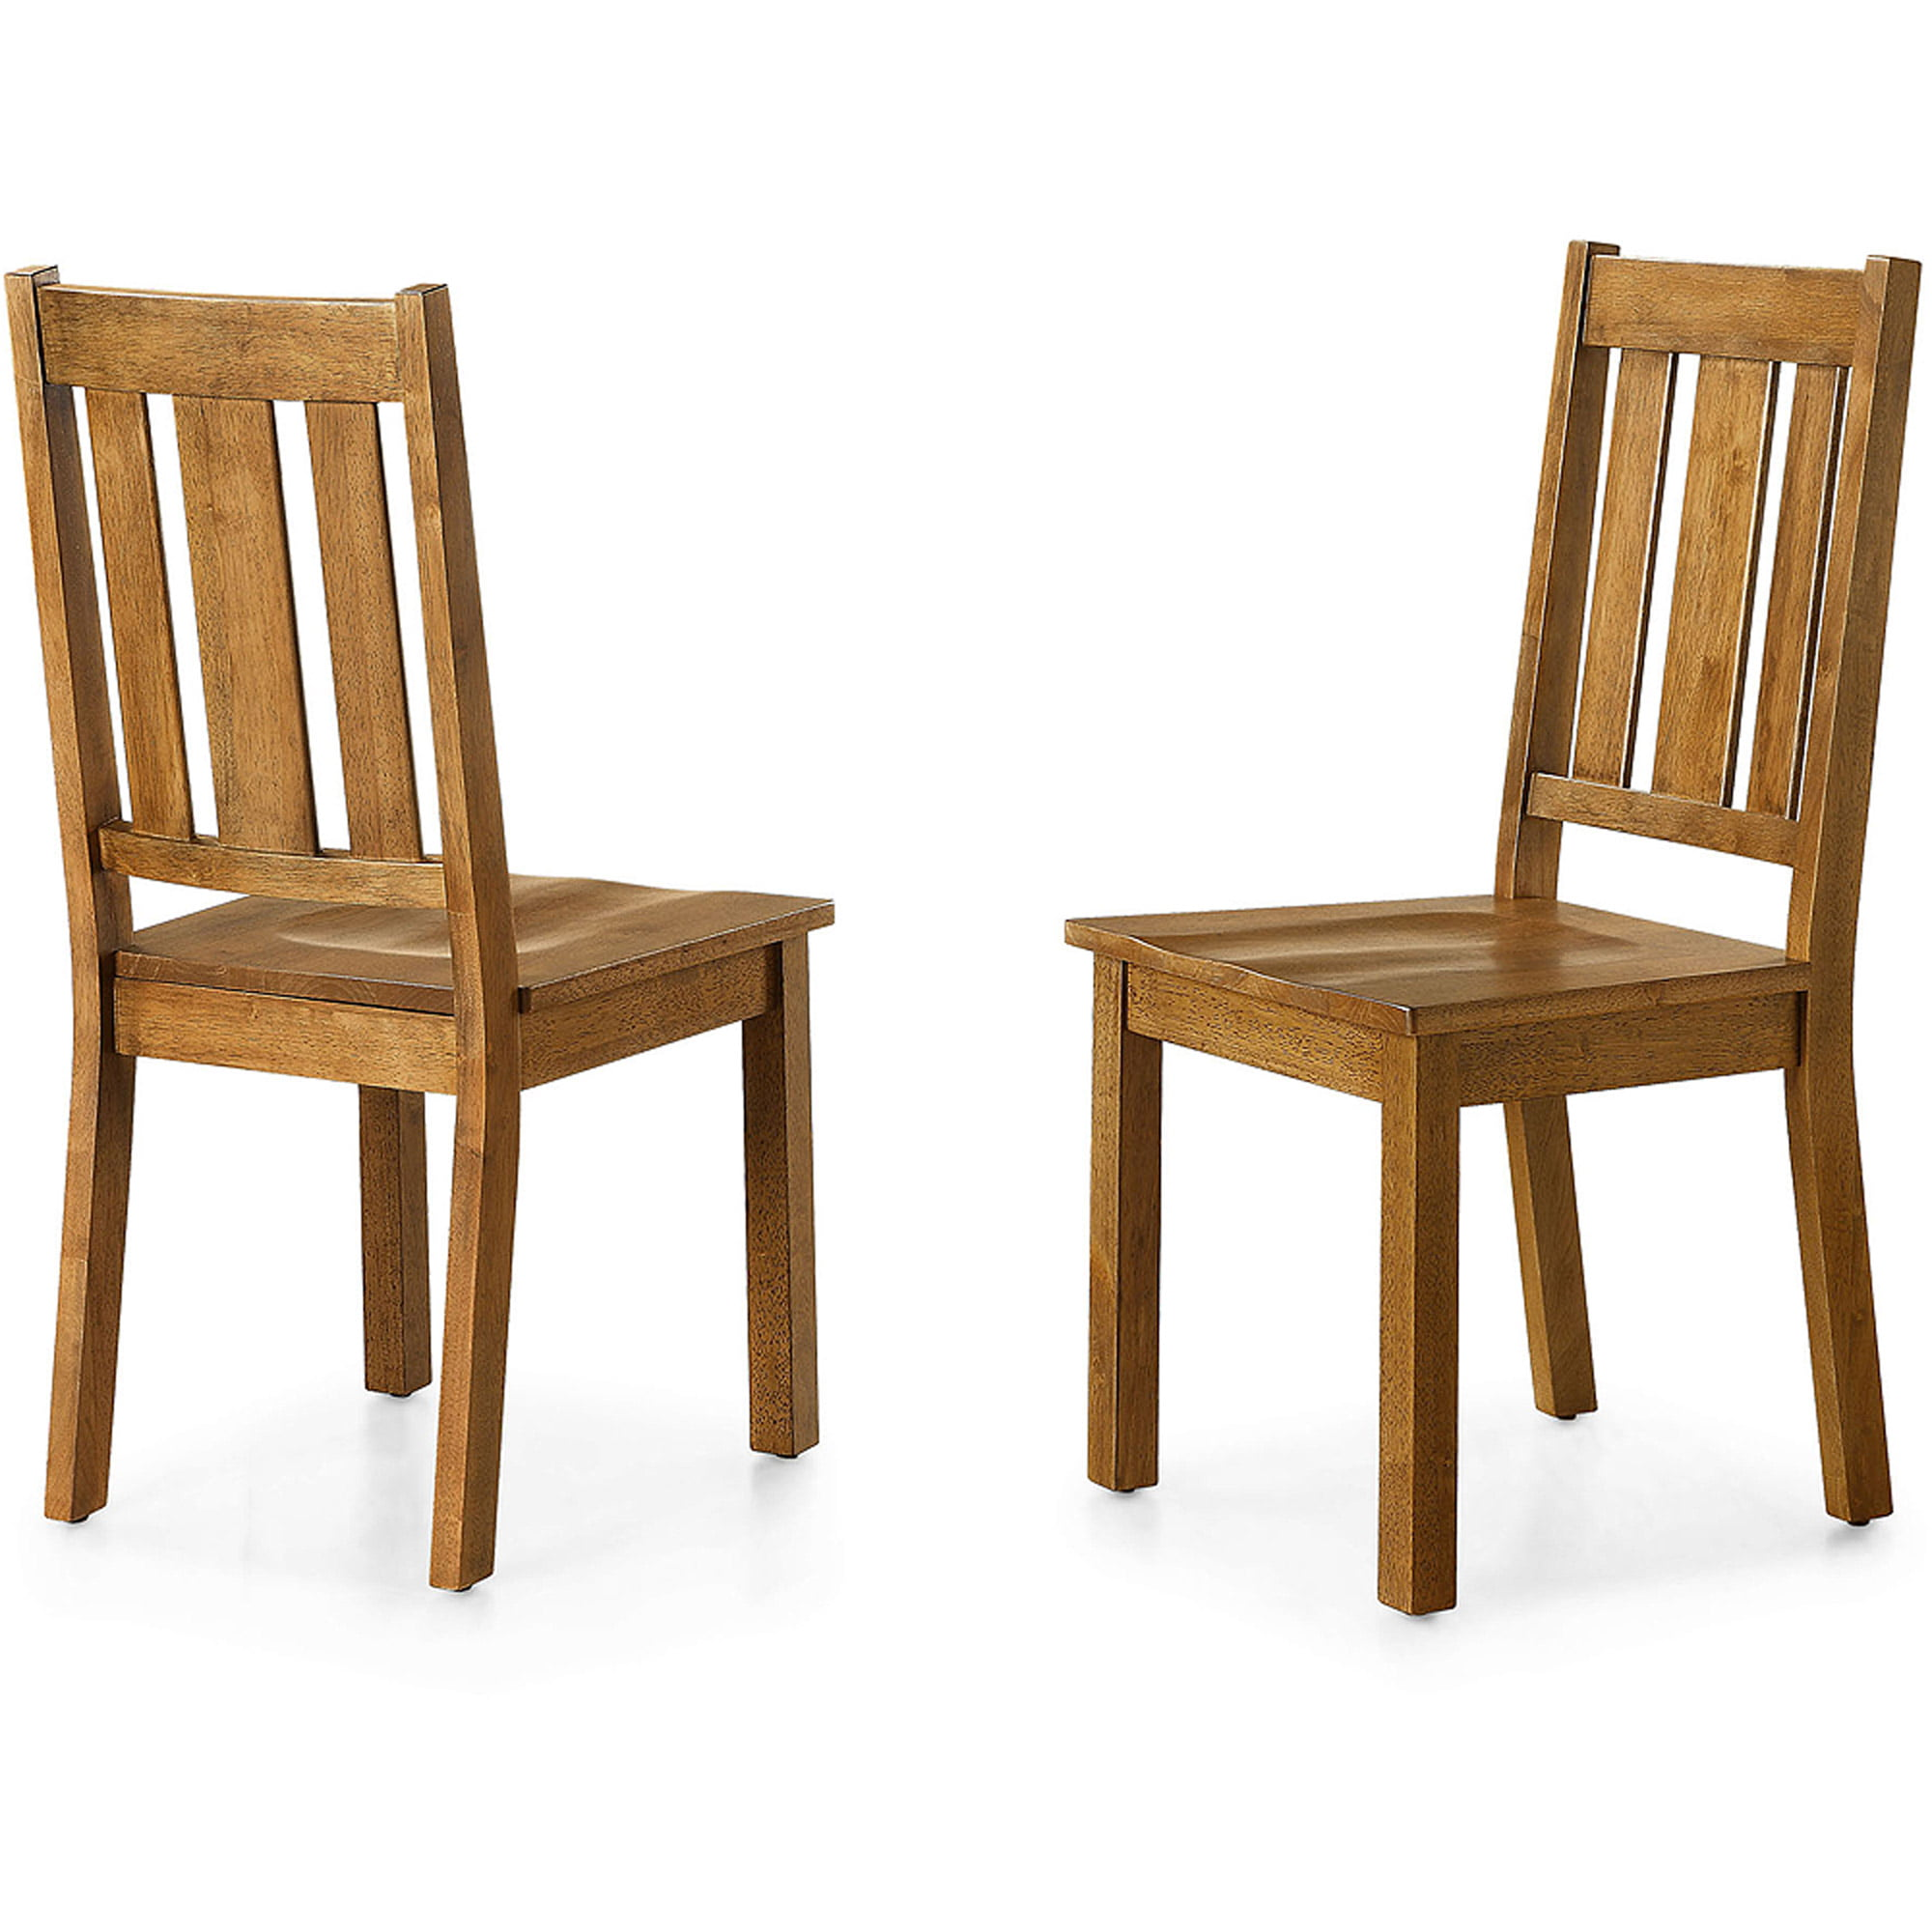 Better Homes and Gardens Bankston Dining Chair Set of 2 Honey